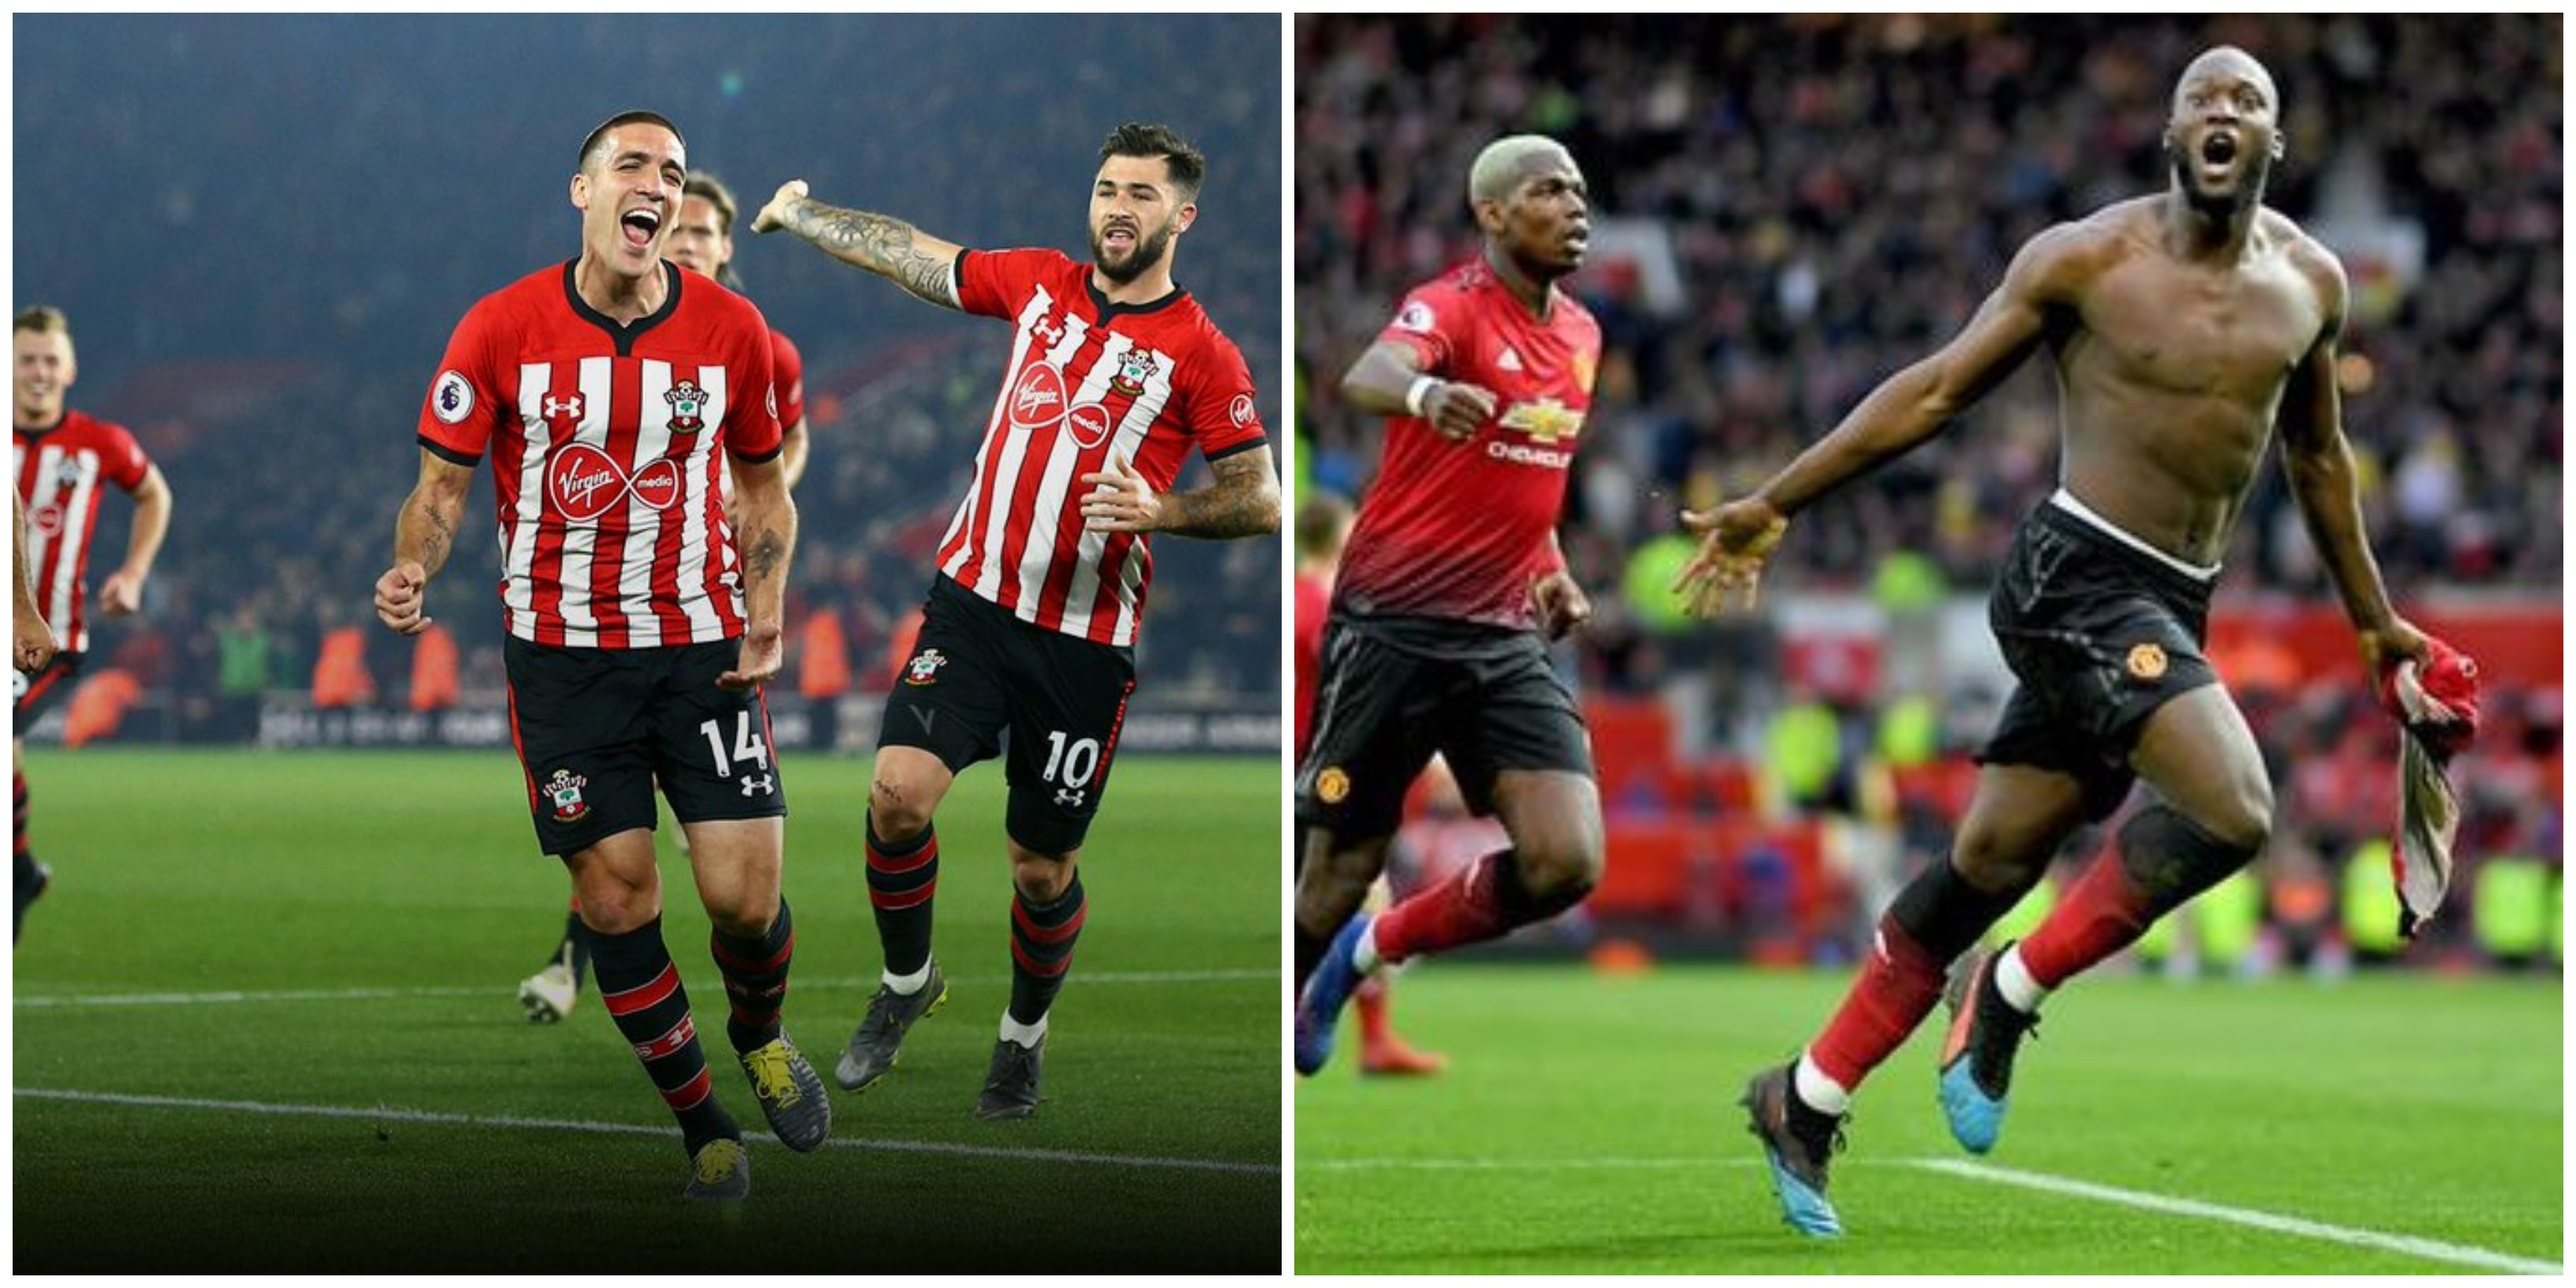 Southampton VS Manchester United Prediction on 31.08 EPL Match